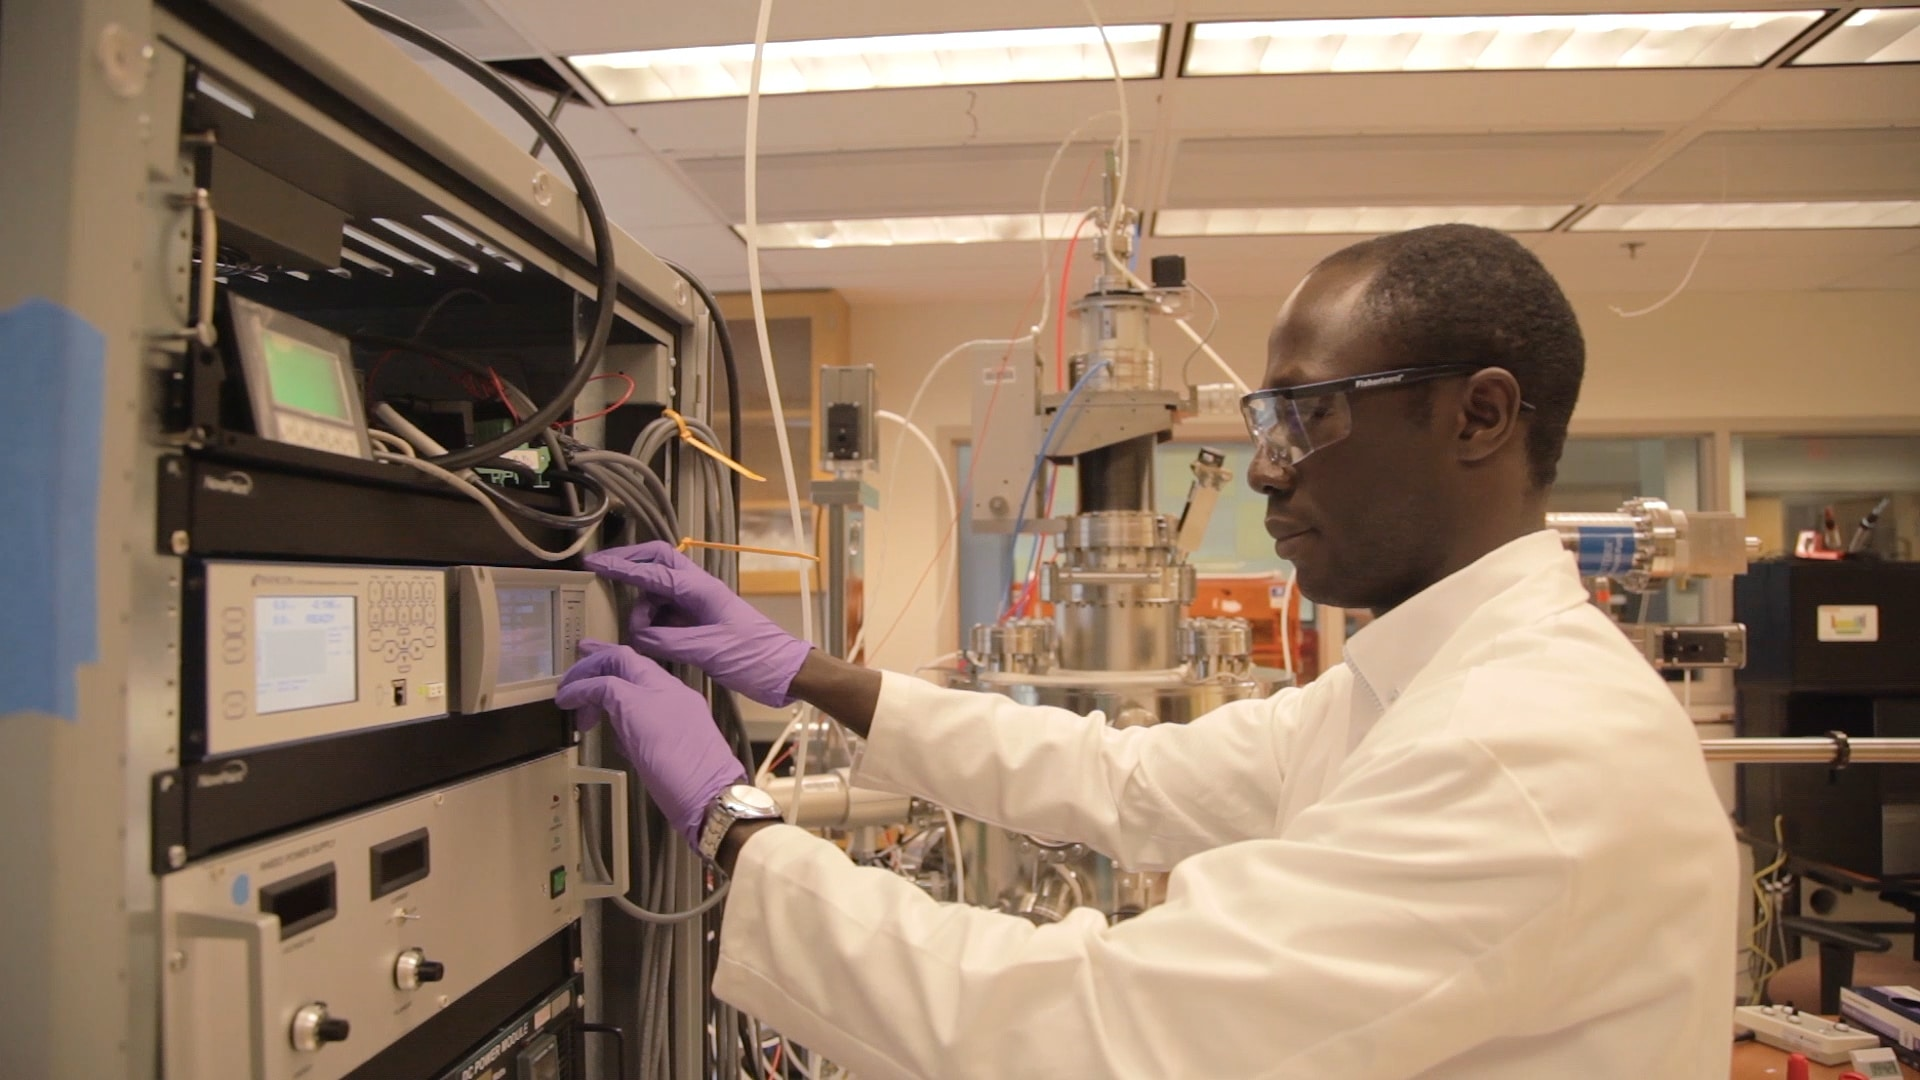 Divine Kumah works with equipment in his lab